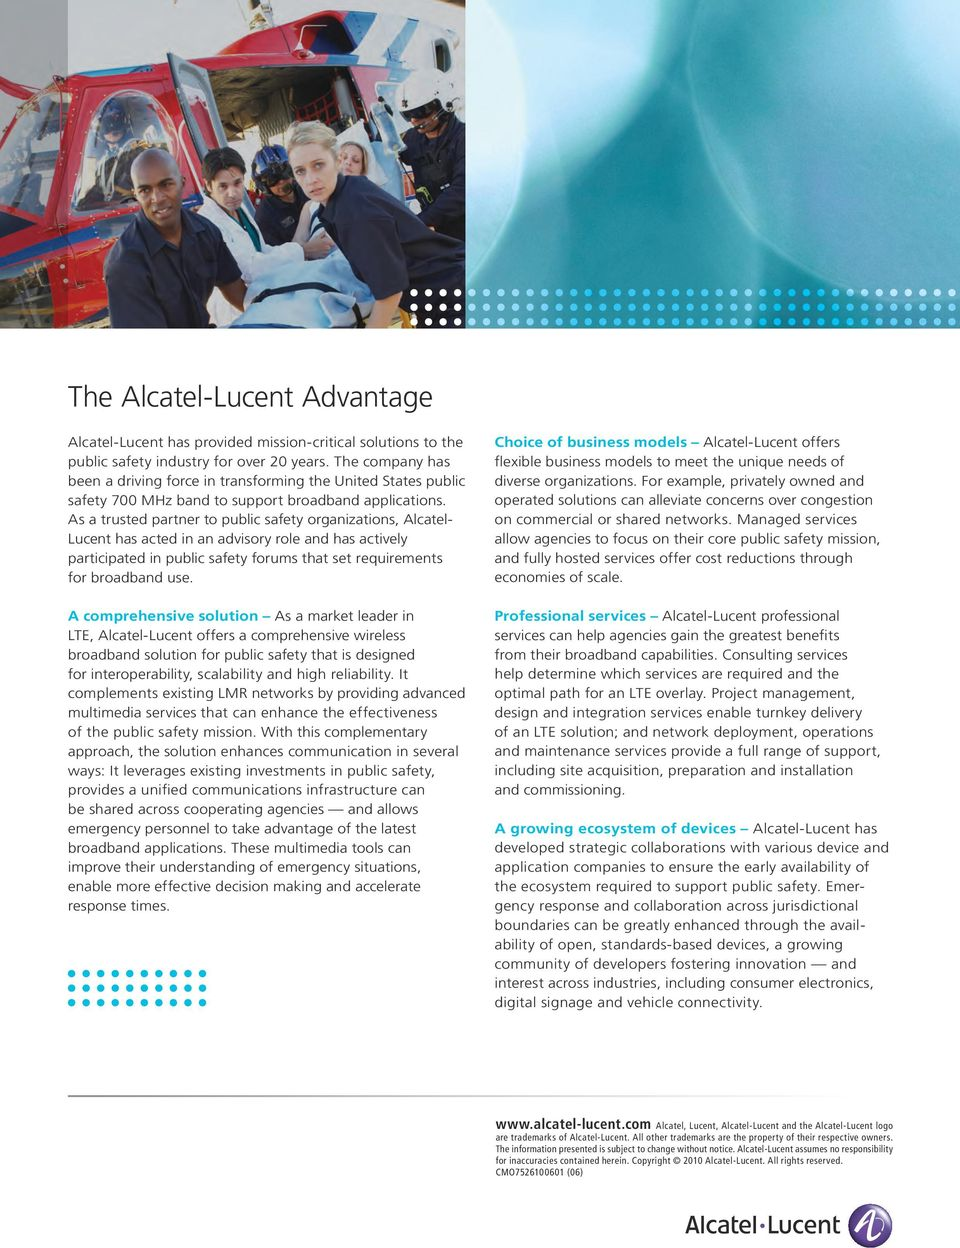 As a trusted partner to public safety organizations, Alcatel- Lucent has acted in an advisory role and has actively participated in public safety forums that set requirements for broadband use.